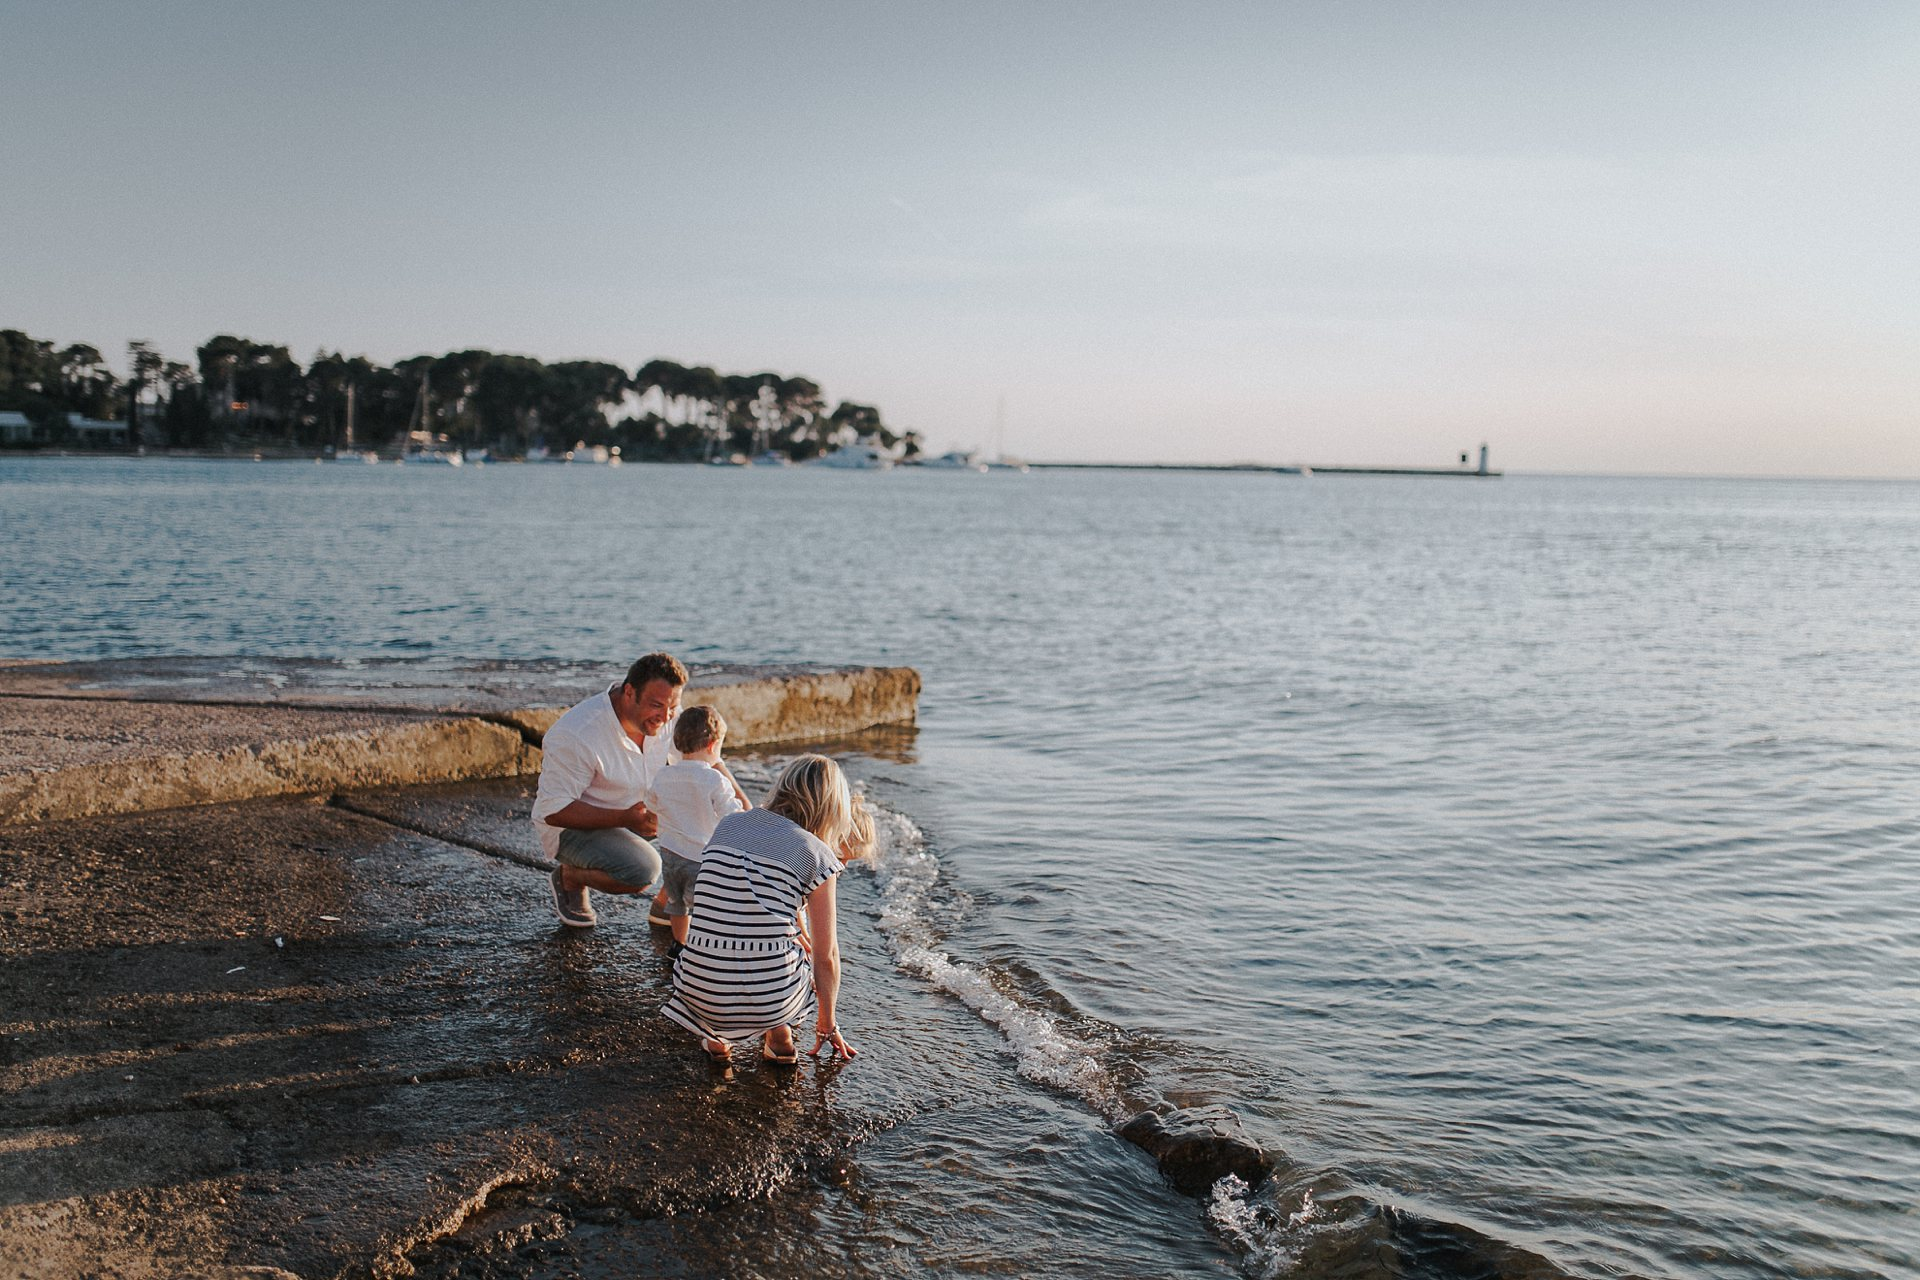 Dalibora_Bijelic_Croatia_Istria_family_vacation_photographer_0025.jpg